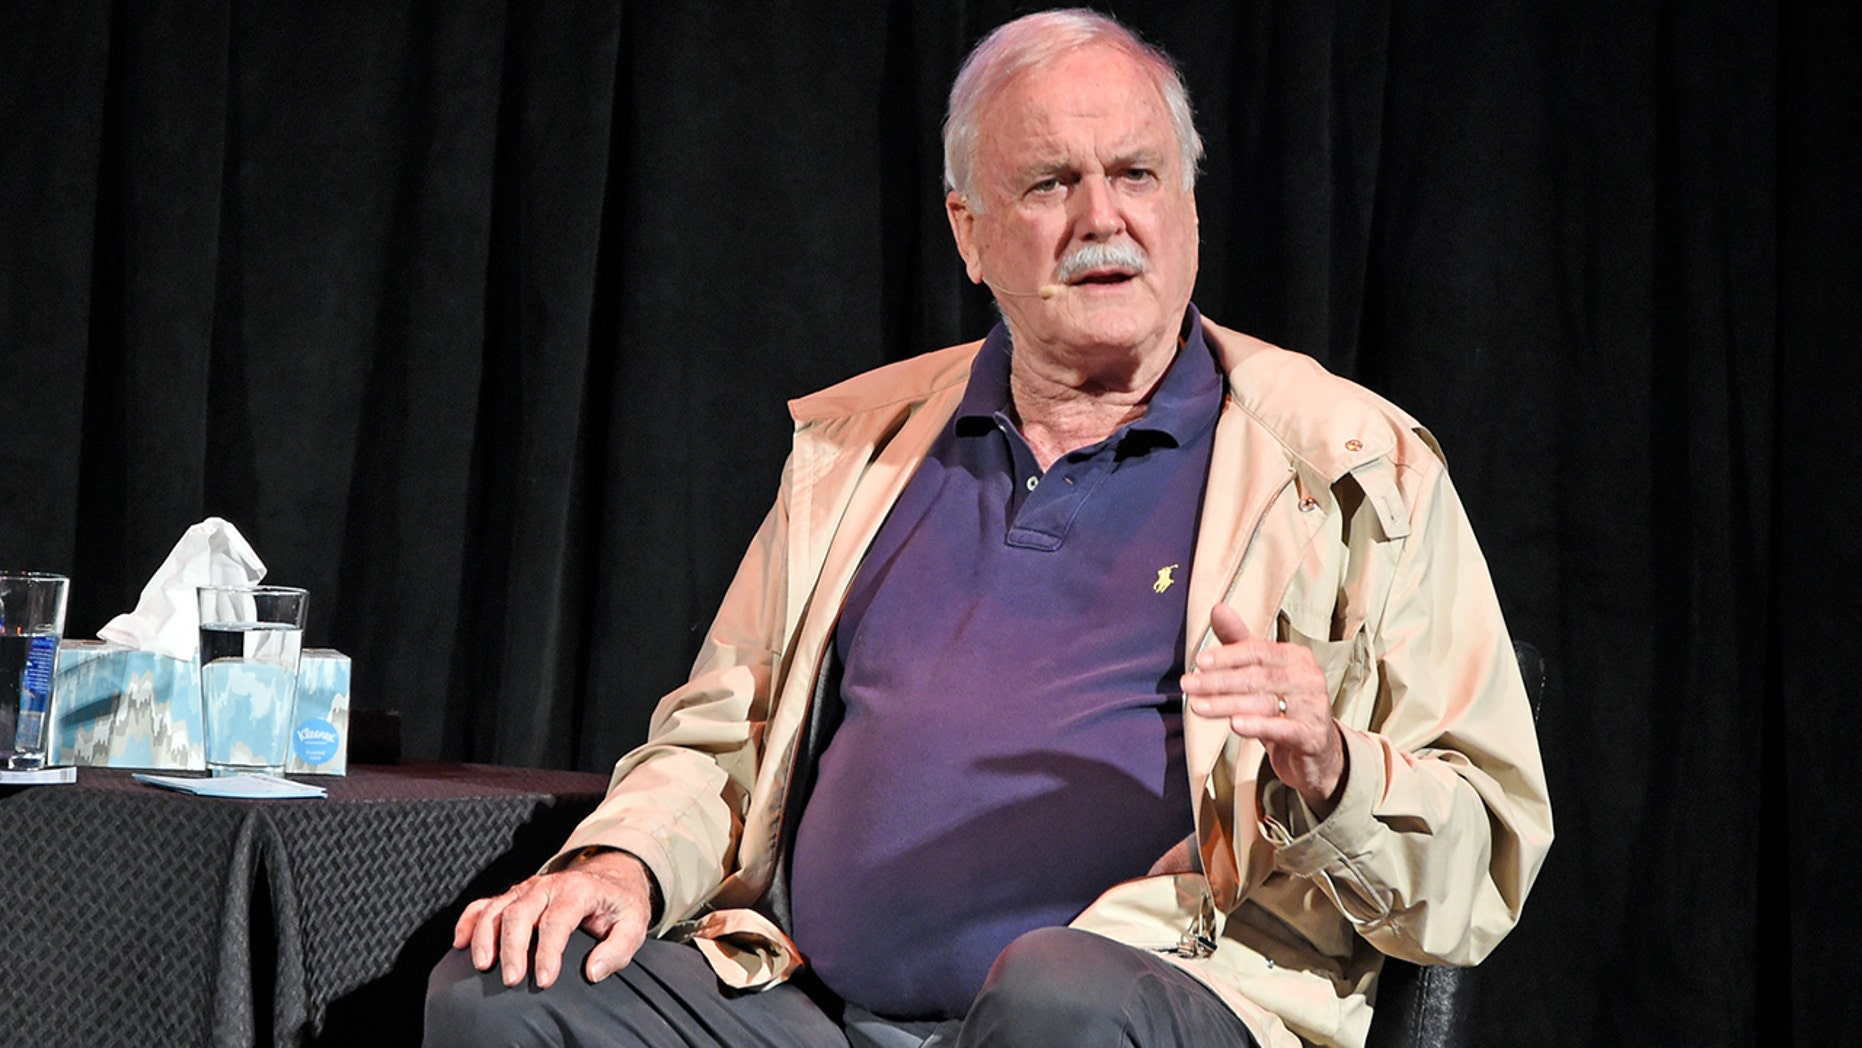 John Cleese upset fans by tweeting a joke about the California wildfires.